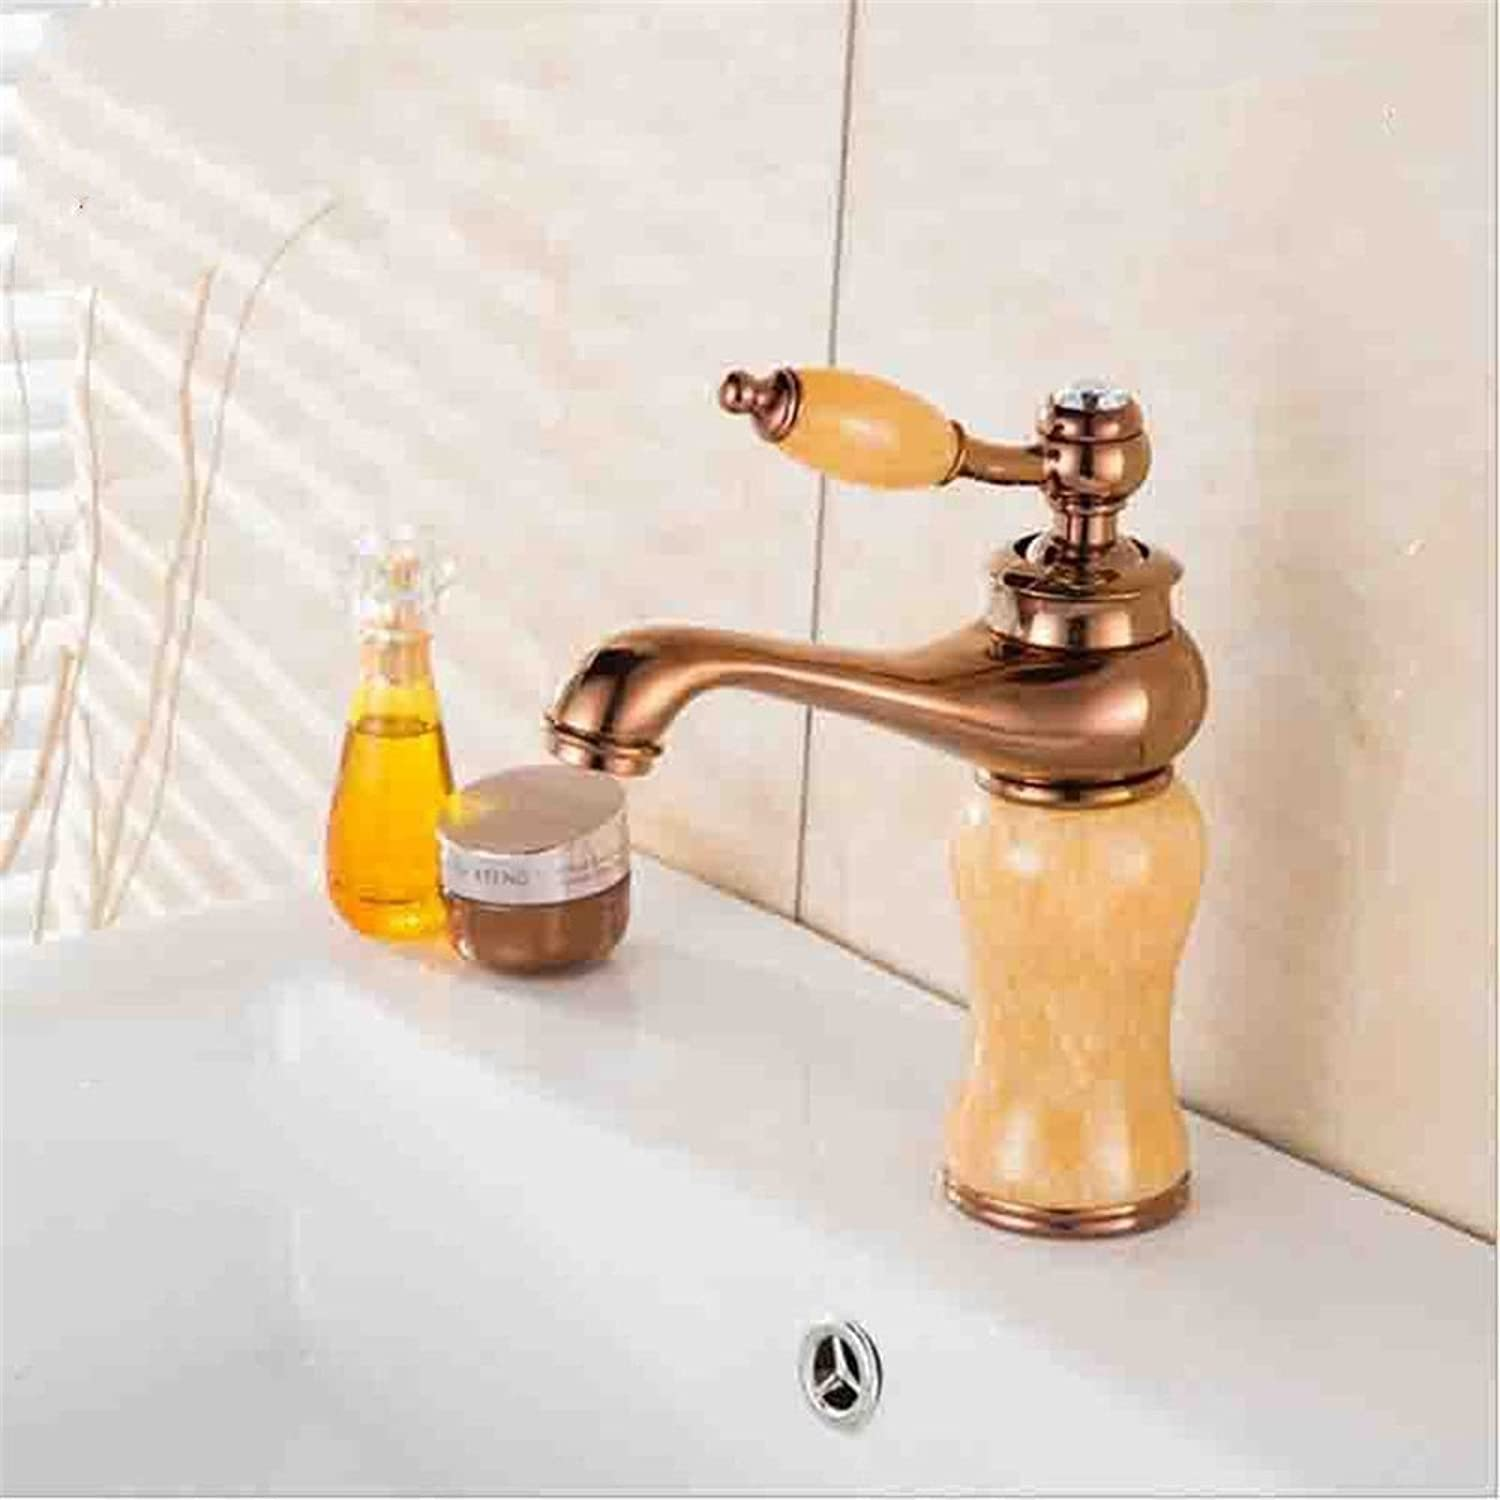 ETERNAL QUALITY Bathroom Sink Basin Tap Brass Mixer Tap Washroom Mixer Faucet Basin taps and cold water wash basin mixer marble gold ceramic antique bathroom faucet 5 Kit